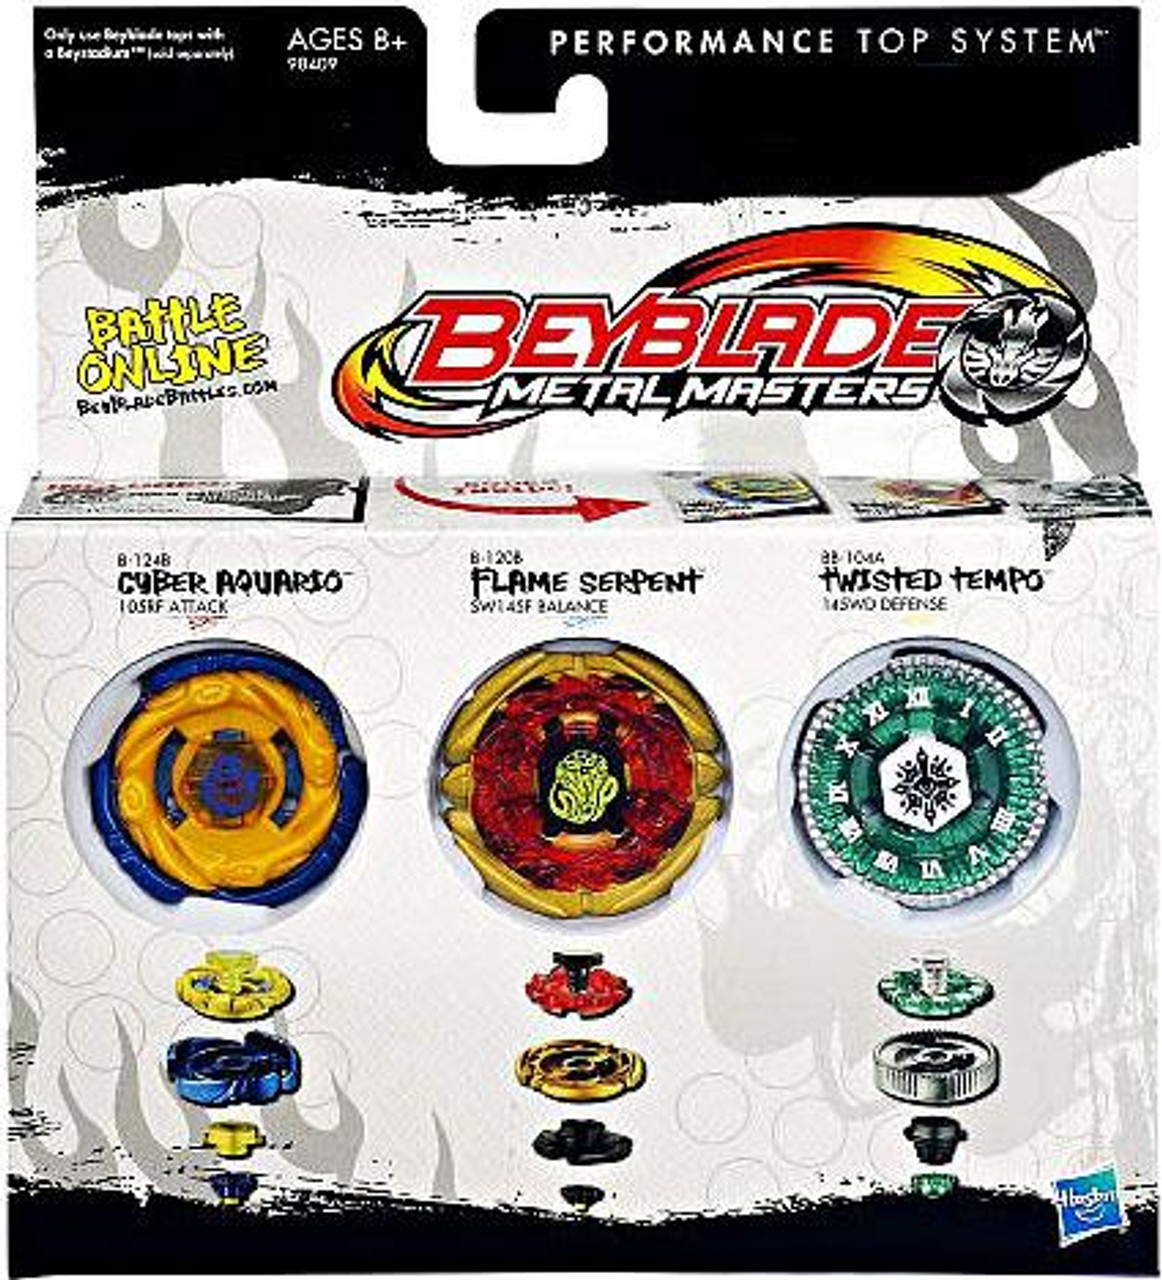 Beyblade Metal Masters Cyber Aquario, Flame Serpent & Twisted Tempo Exclusive 3-Pack